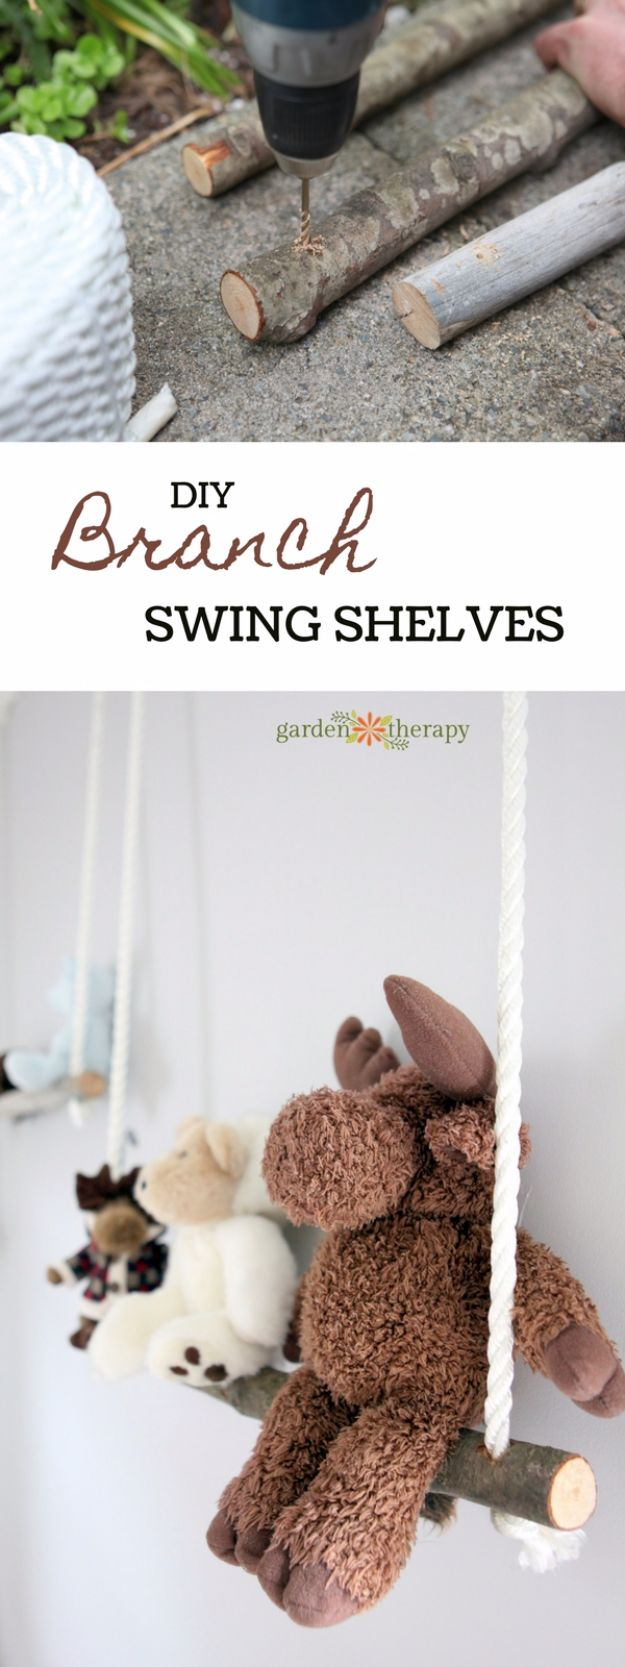 DIY Playroom Ideas and Furniture - Branch Swing Shelves - Easy Play Room Storage, Furniture Ideas for Kids, Playtime Rugs and Activity Mats, Shelving, Toy Boxes and Wall Art - Cute DIY Room Decor for Boys and Girls - Fun Crafts with Step by Step Tutorials and Instructions http://diyjoy.com/diy-playroom-ideas